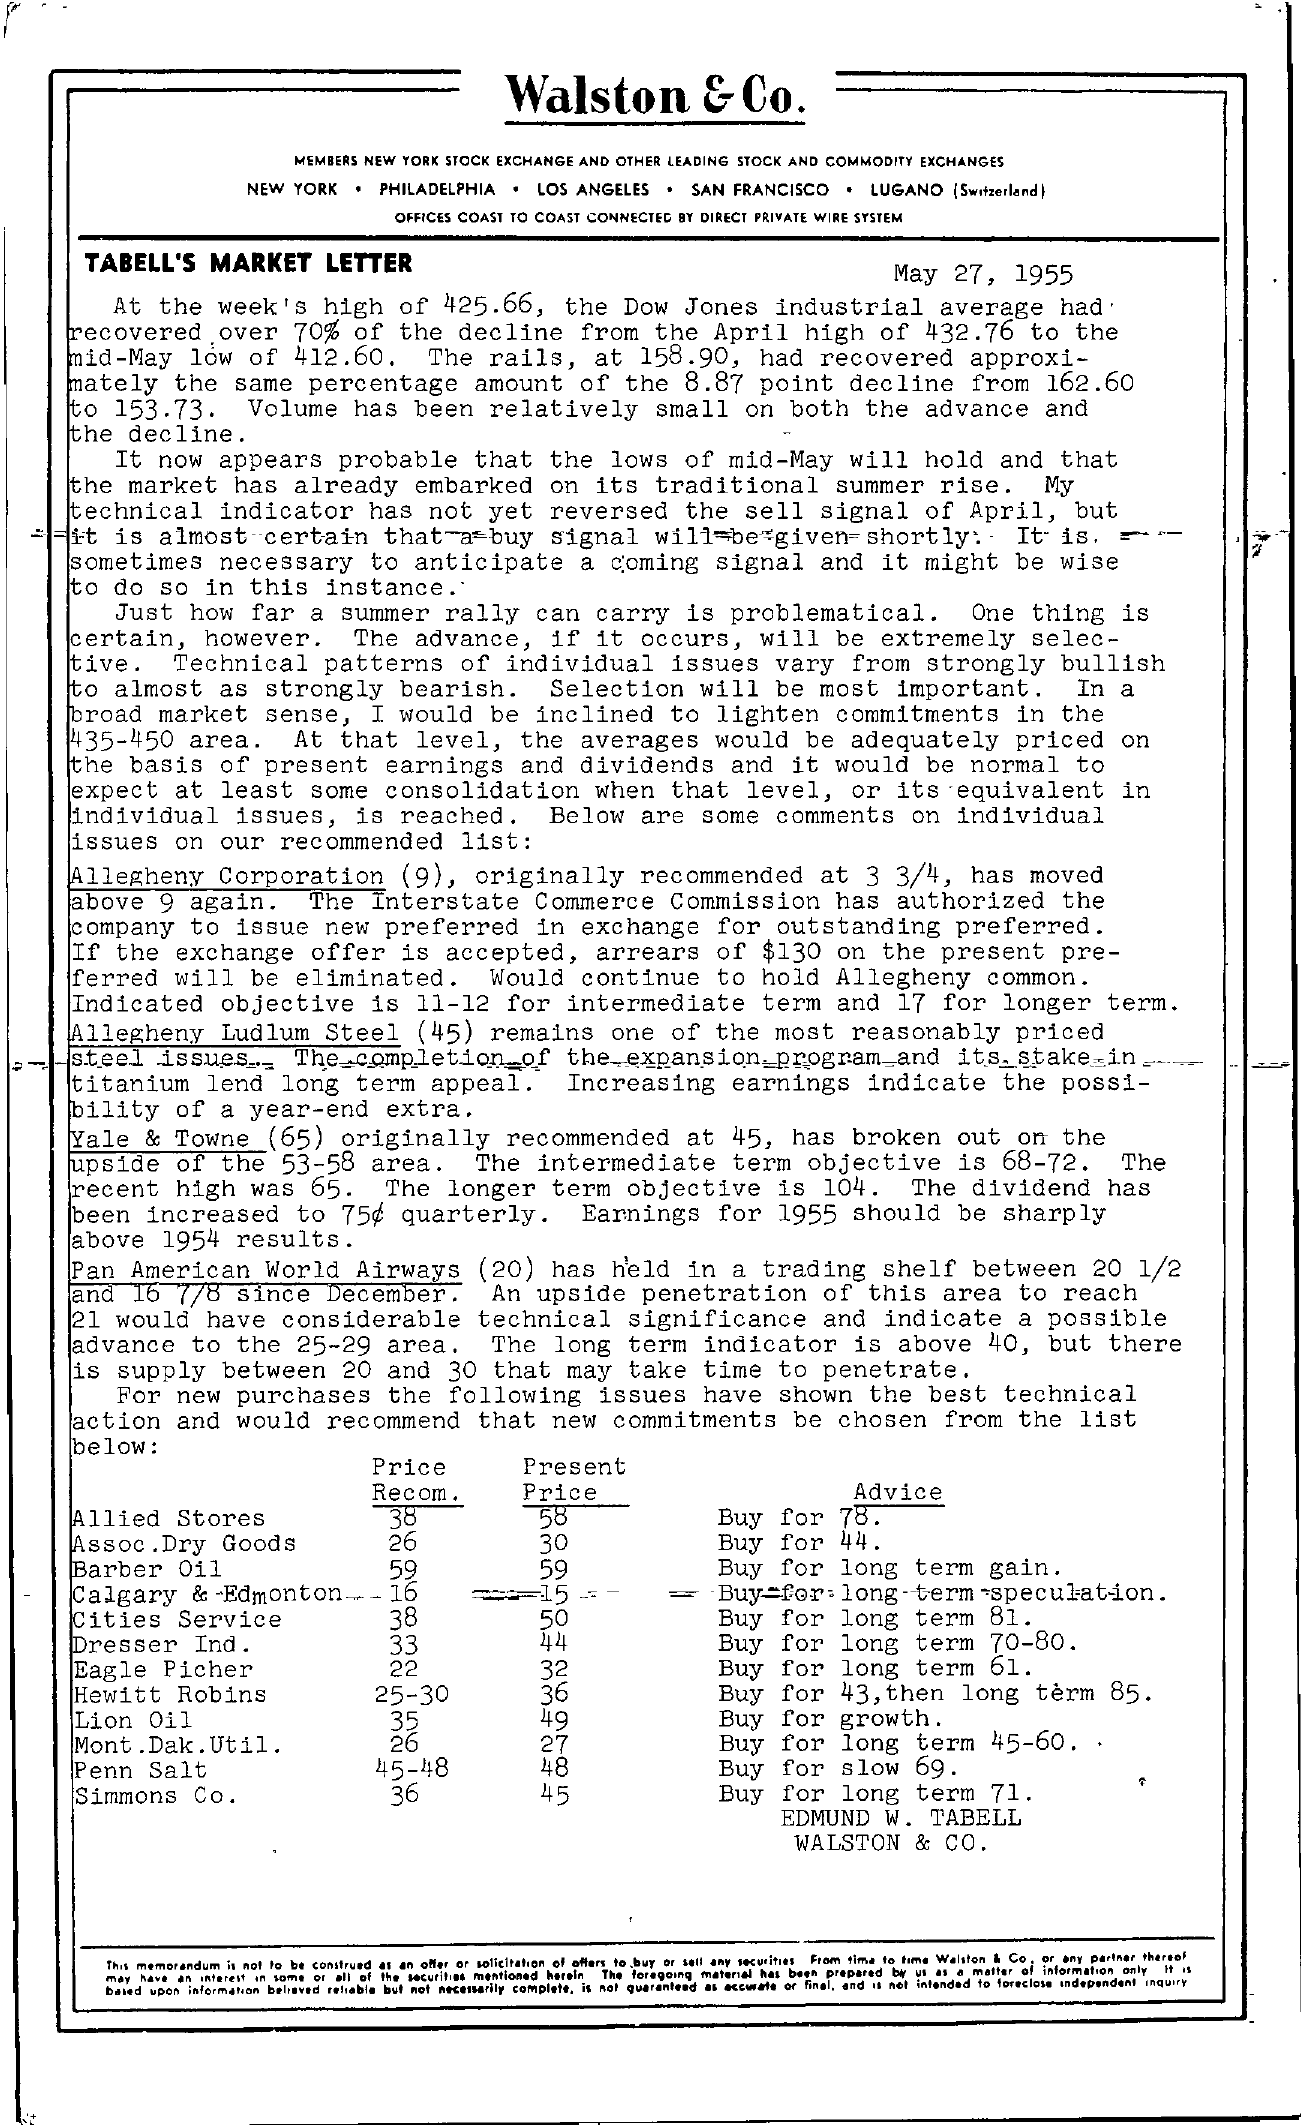 Tabell's Market Letter - May 27, 1955